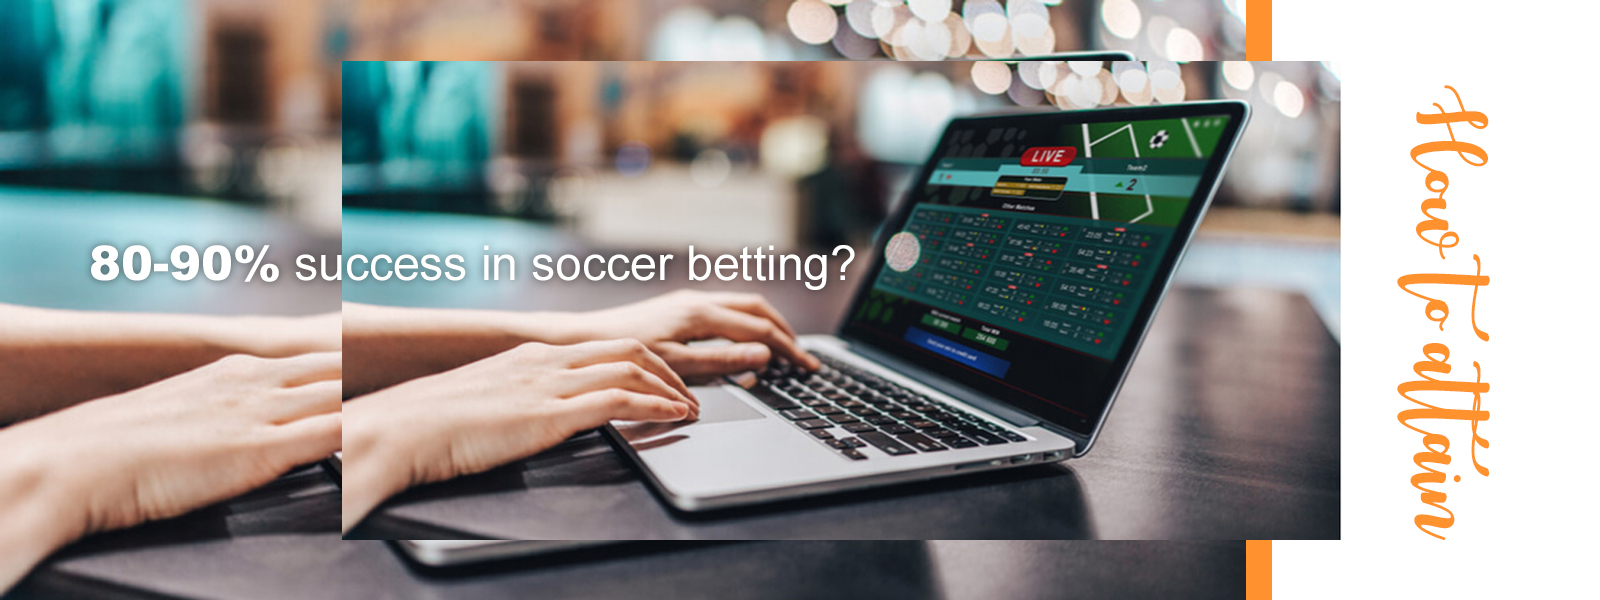 How to attain 80-90% success in soccer betting?